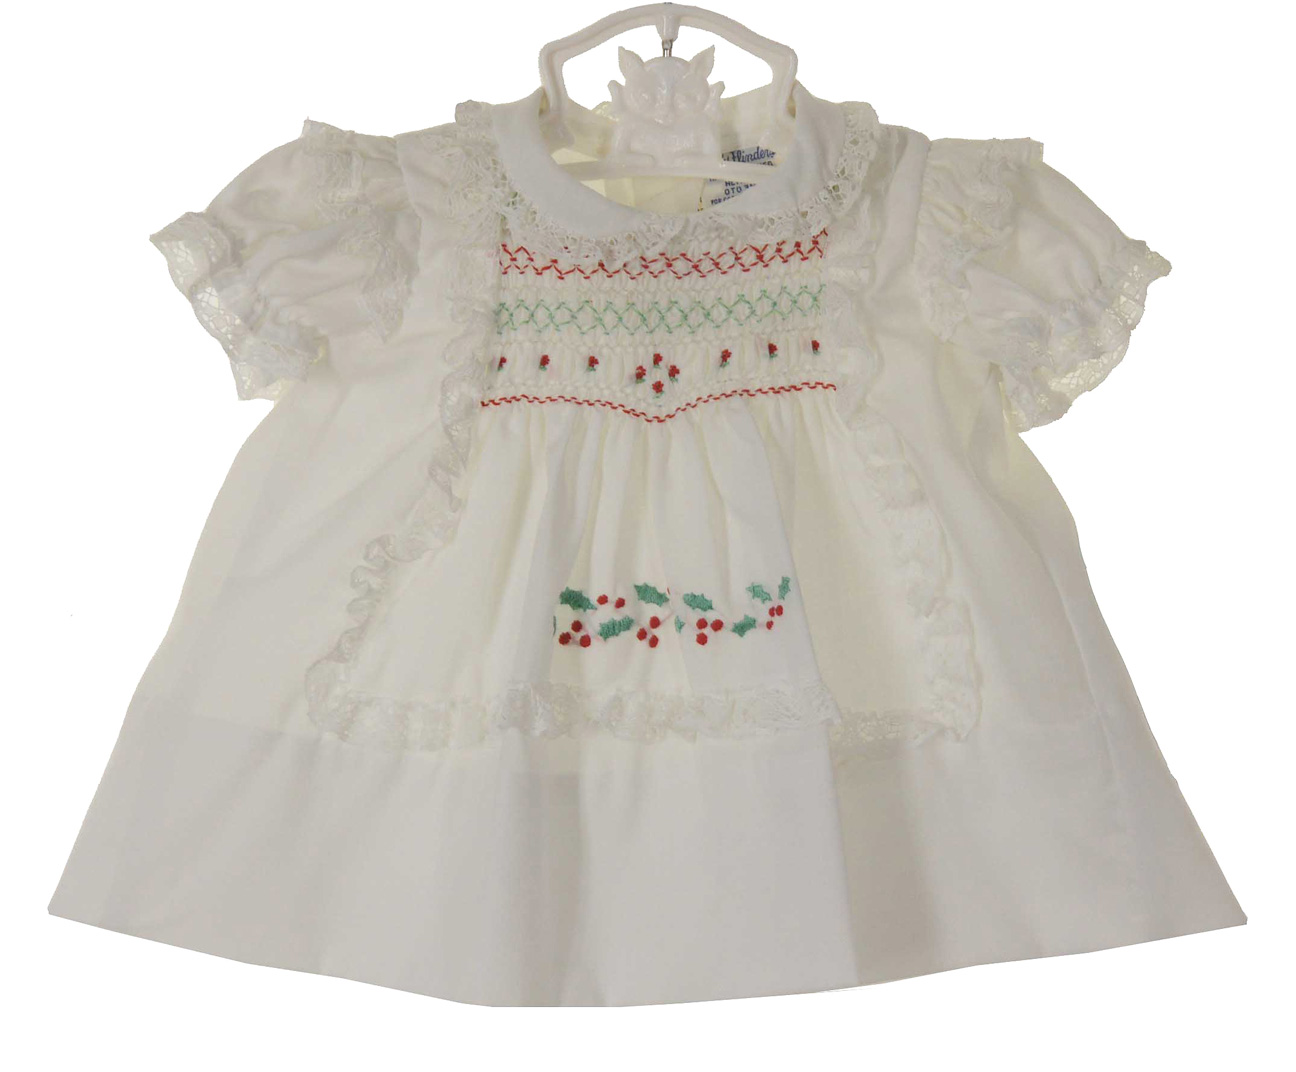 New Polly Flinders White Smocked Baby Dress With Holly